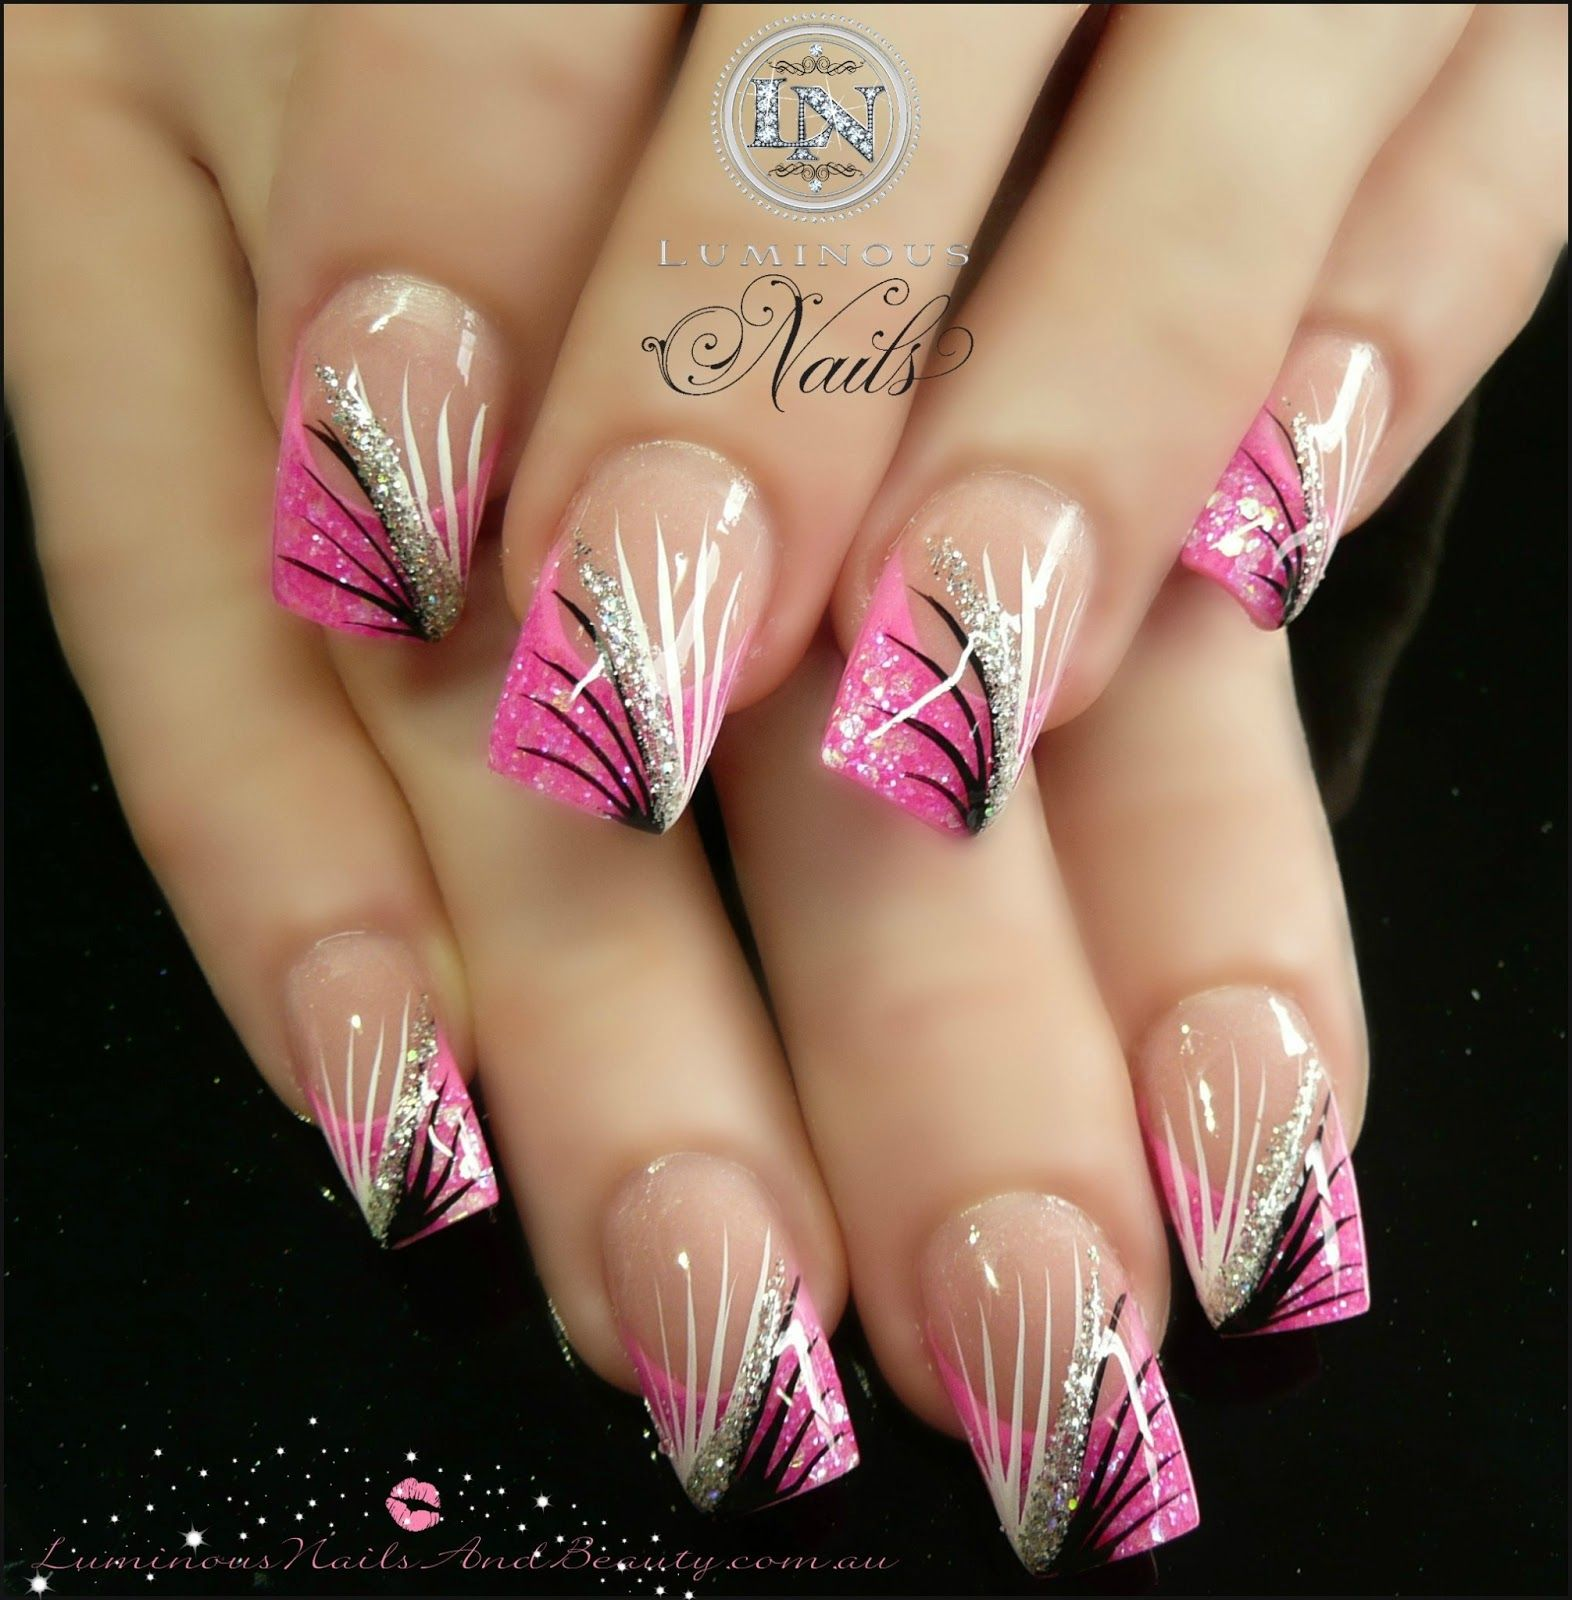 Pink and white gel nails hot pink black white silver nails pink and white gel nails hot pink black white silver nails sculptured acrylic with neon prinsesfo Choice Image